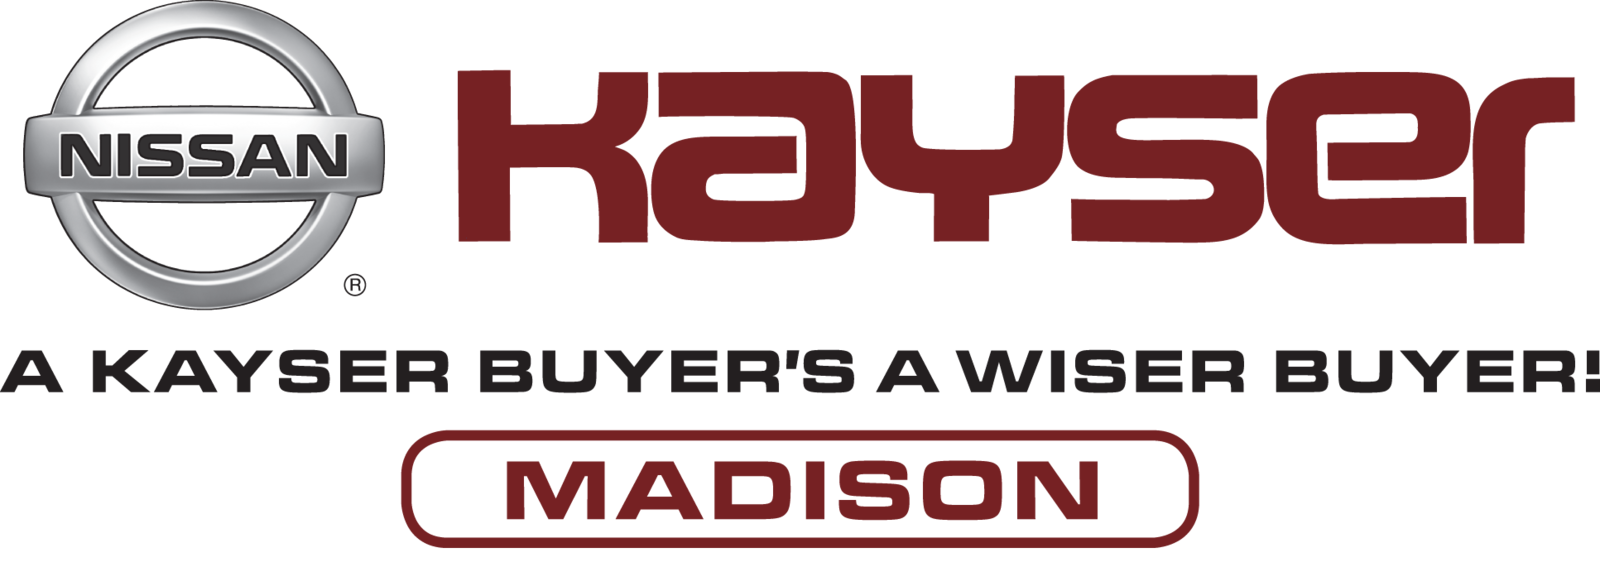 Kayser Used Cars